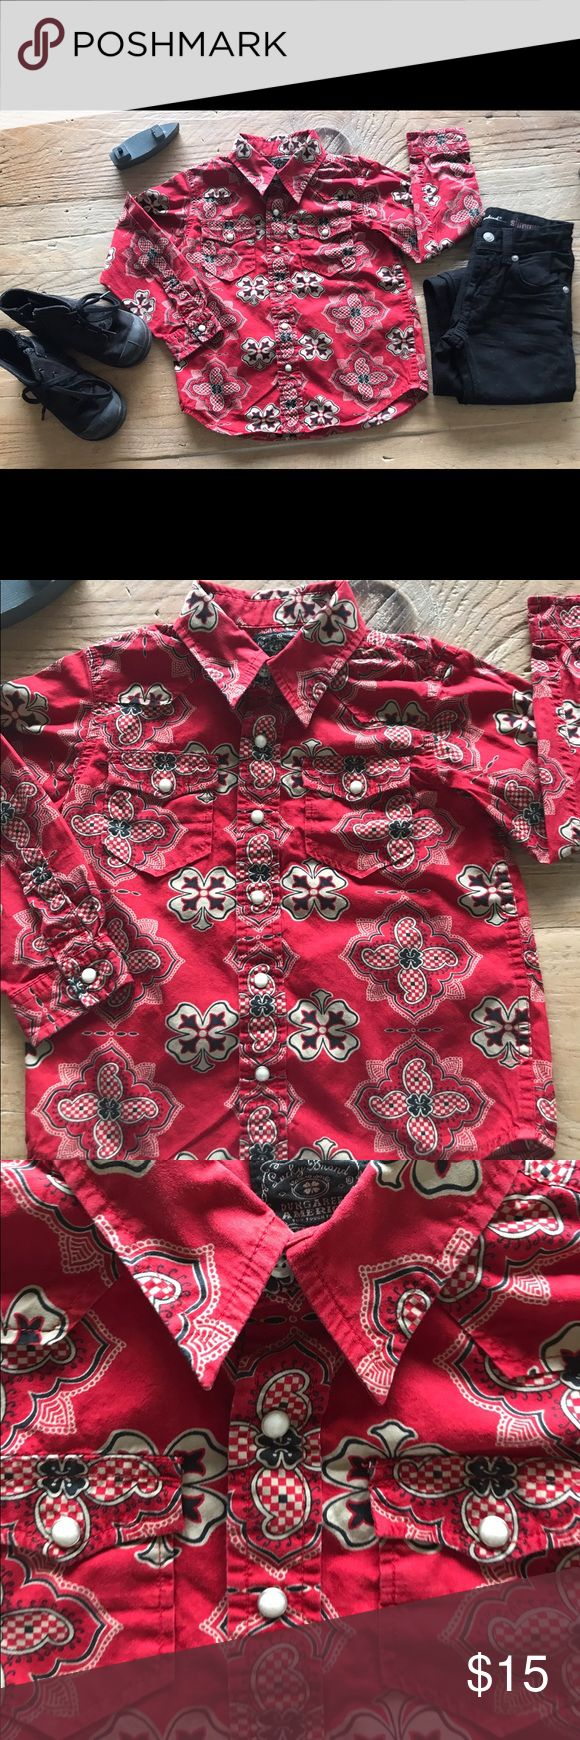 Lucky Brand Toddler Boys Button Down Shirt - SZ4 Sorry to see this one go! Super cute Western pearly snap down shirt. Excellent used condition. Great for class photo, birthday 🎉 party or everyday wear. Superior Lucky brand quality. 100% cotton! Pet/smoke free home. Freshly washed and pressed, ready to wear!  Selling shirt only! Lucky Brand Shirts & Tops Button Down Shirts